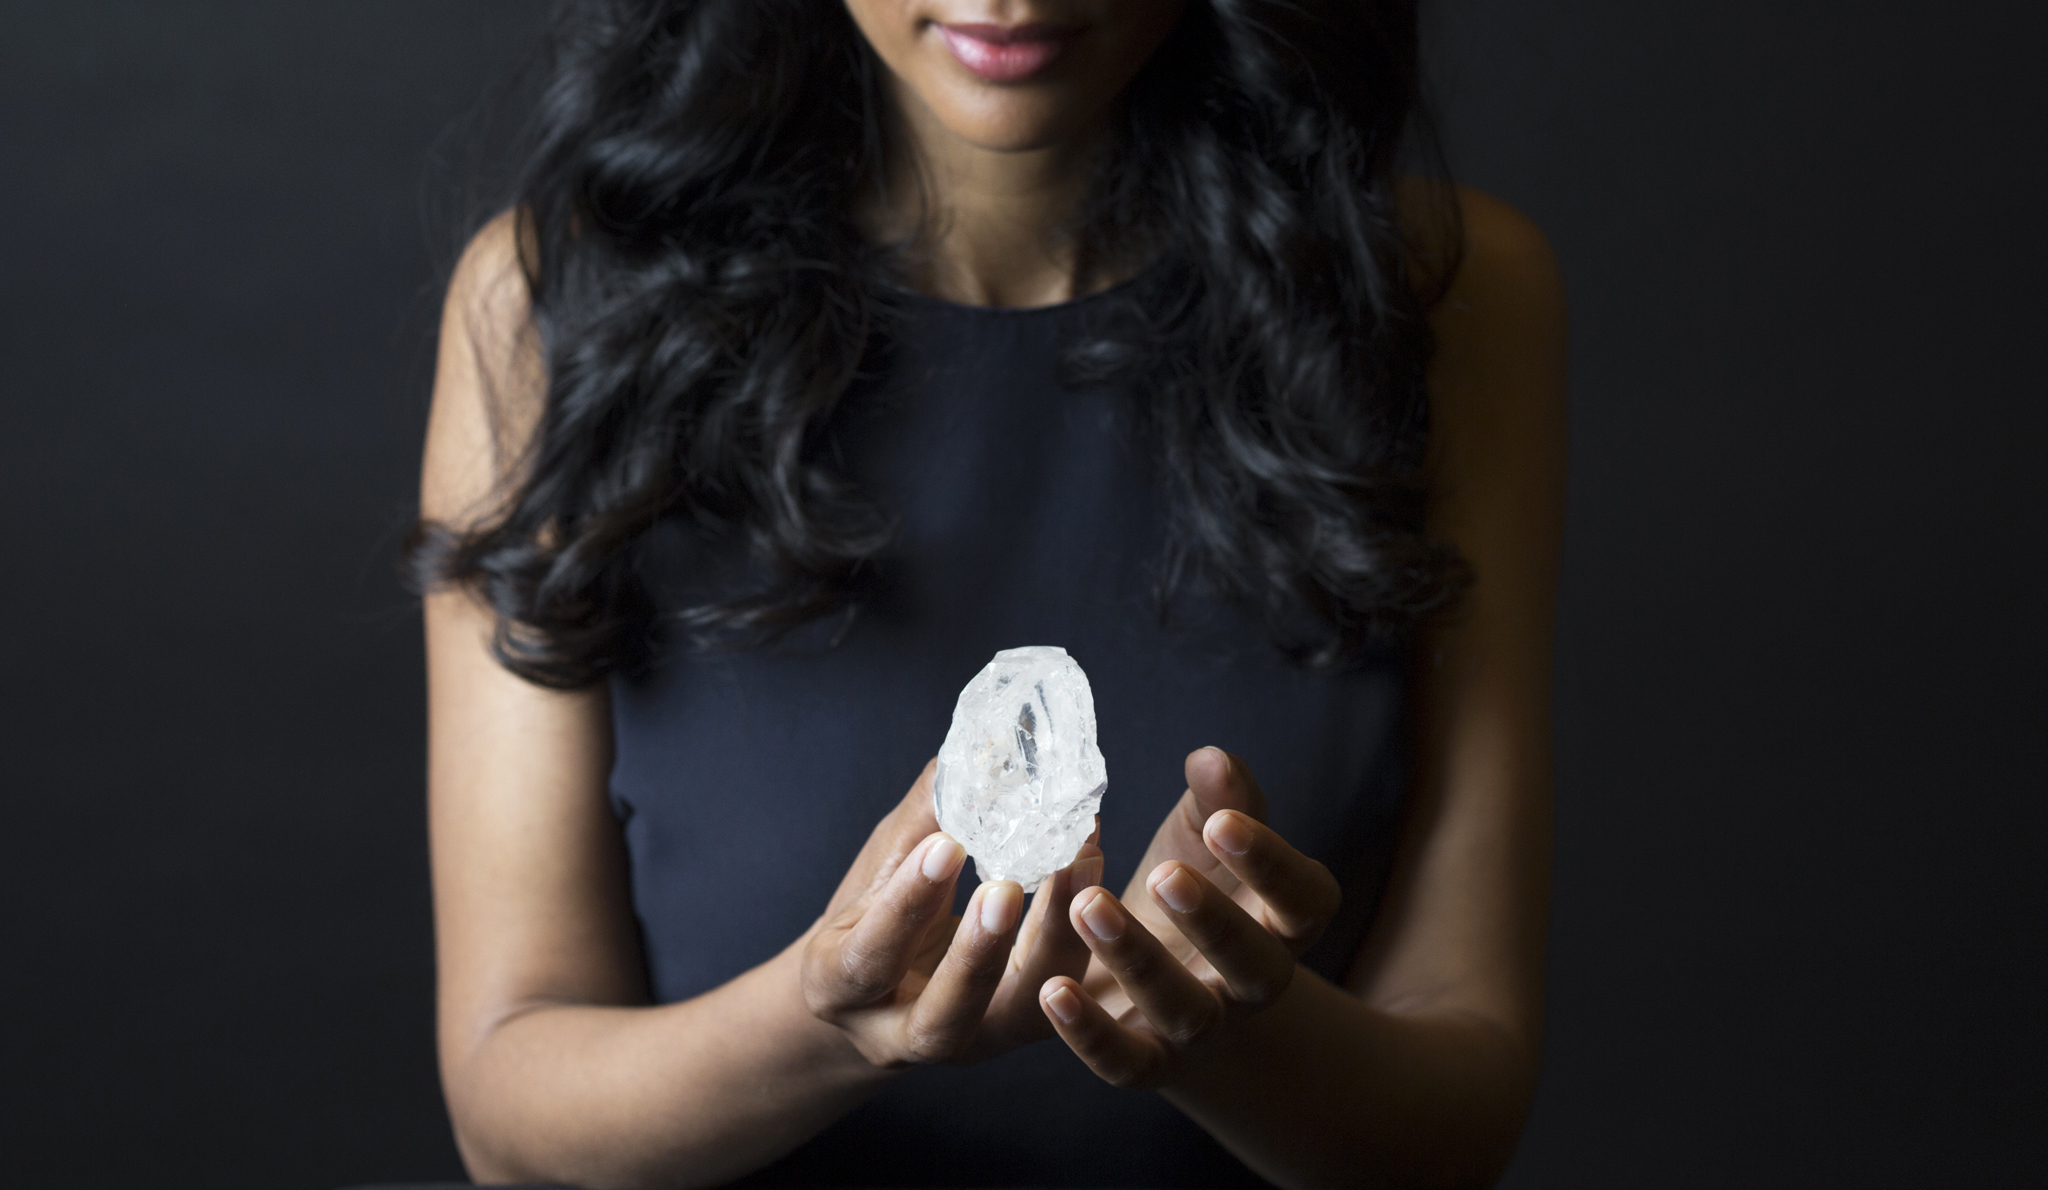 A Sotheby's  employee  holds Lesedi La Rona Diamond on May Tuesday  3, 2016 in New York City. The diamond the size of a tennis ball that is the largest discovered in more than a century could sell at auction for more than $70 million. Sotheby's says it will offer the Lesedi la Rona diamond in London on June 29